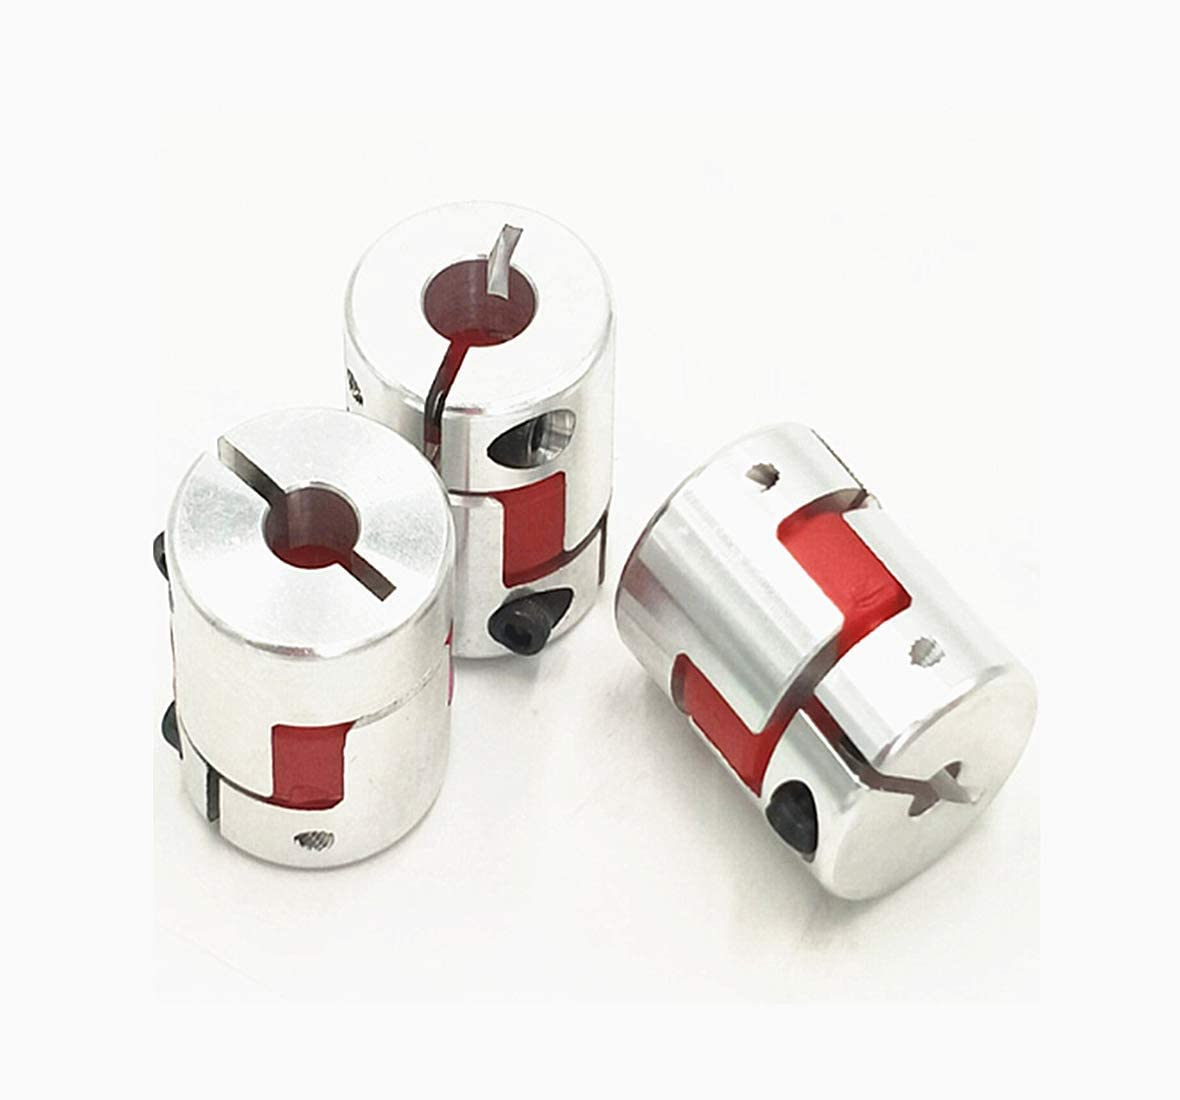 3Pcs 6.35x10mm CNC Stepper Motor Jaw Shaft Coupler 6.35mm to 10mm Aluminum Flexible Jaw Spider Plum Coupling D25L30 Connector for CNC Router Engraving Milling Machine/3D Printer - -